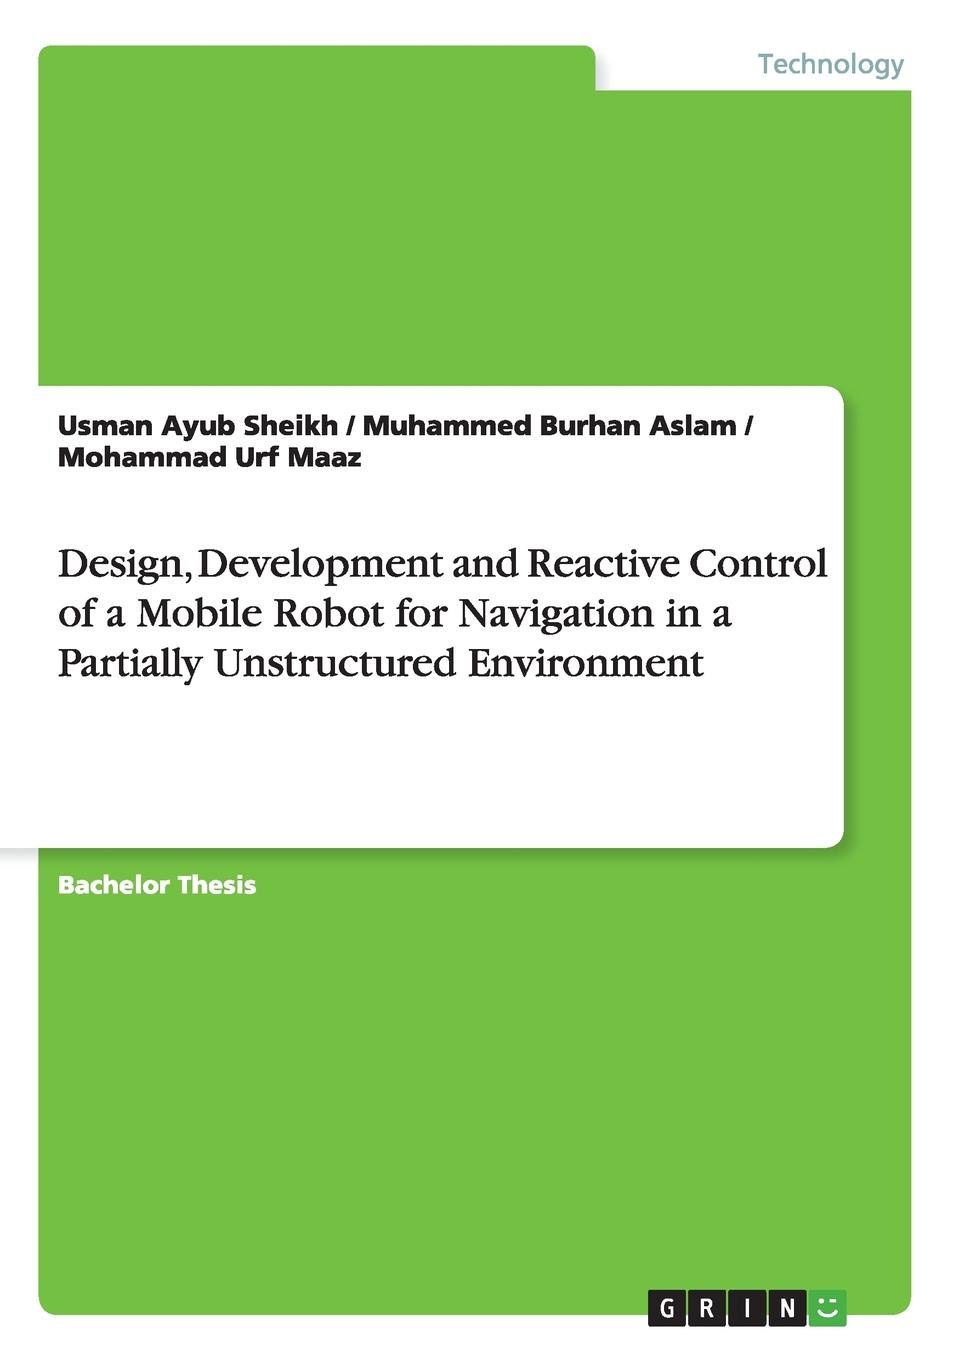 Фото - Usman Ayub Sheikh, Muhammed Burhan Aslam, Mohammad Urf Maaz Design, Development and Reactive Control of a Mobile Robot for Navigation in a Partially Unstructured Environment agent based snort in distributed environment